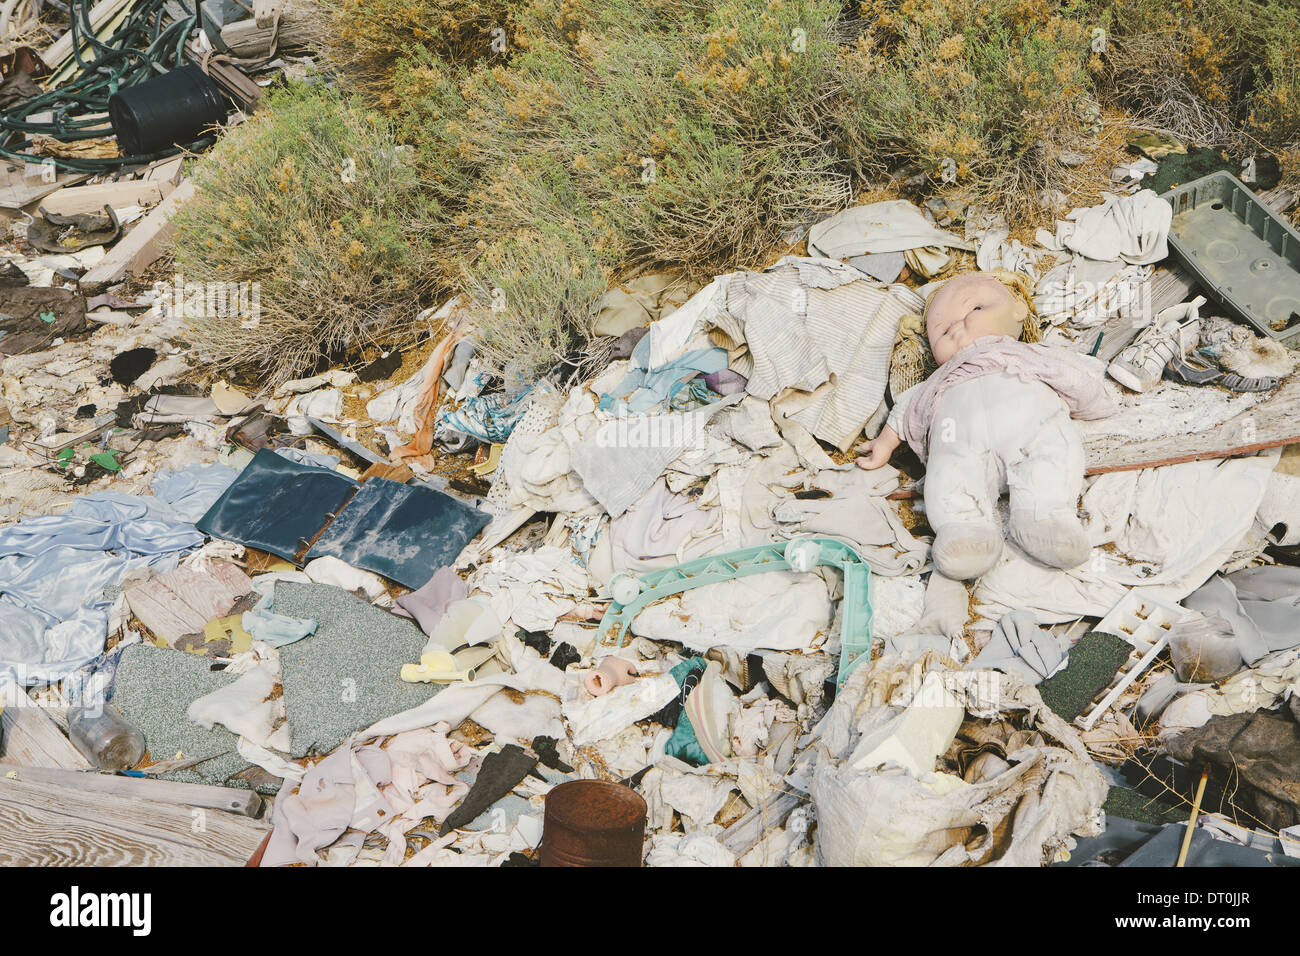 garbage discarded Rubbish paper children's doll - Stock Image